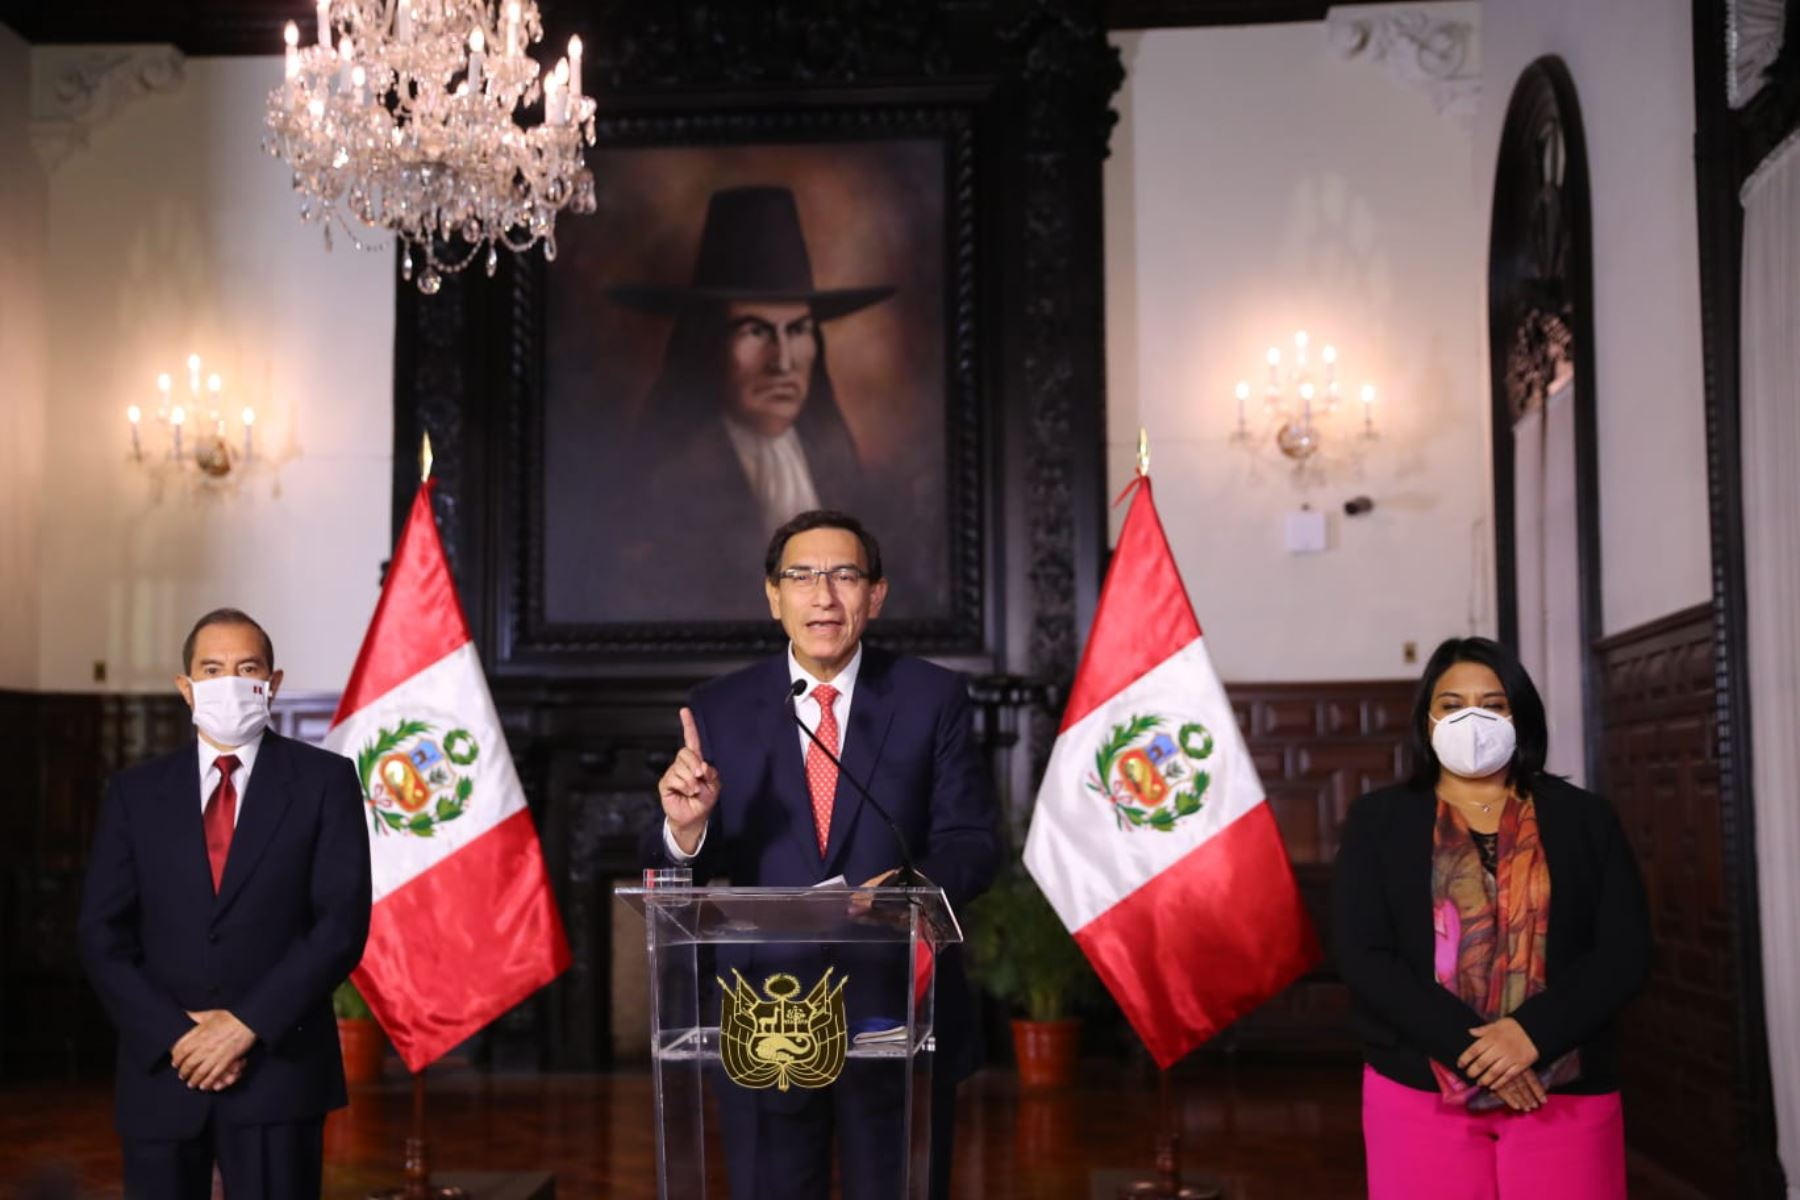 Peruvian President Martin Vizcarra delivers an Address to the Nation. He is joined by Prime Minister Walter Martos and Justice Minister Ana Neyra at the Government Palace in Lima. Photo: ANDINA/Presidency of the Republic